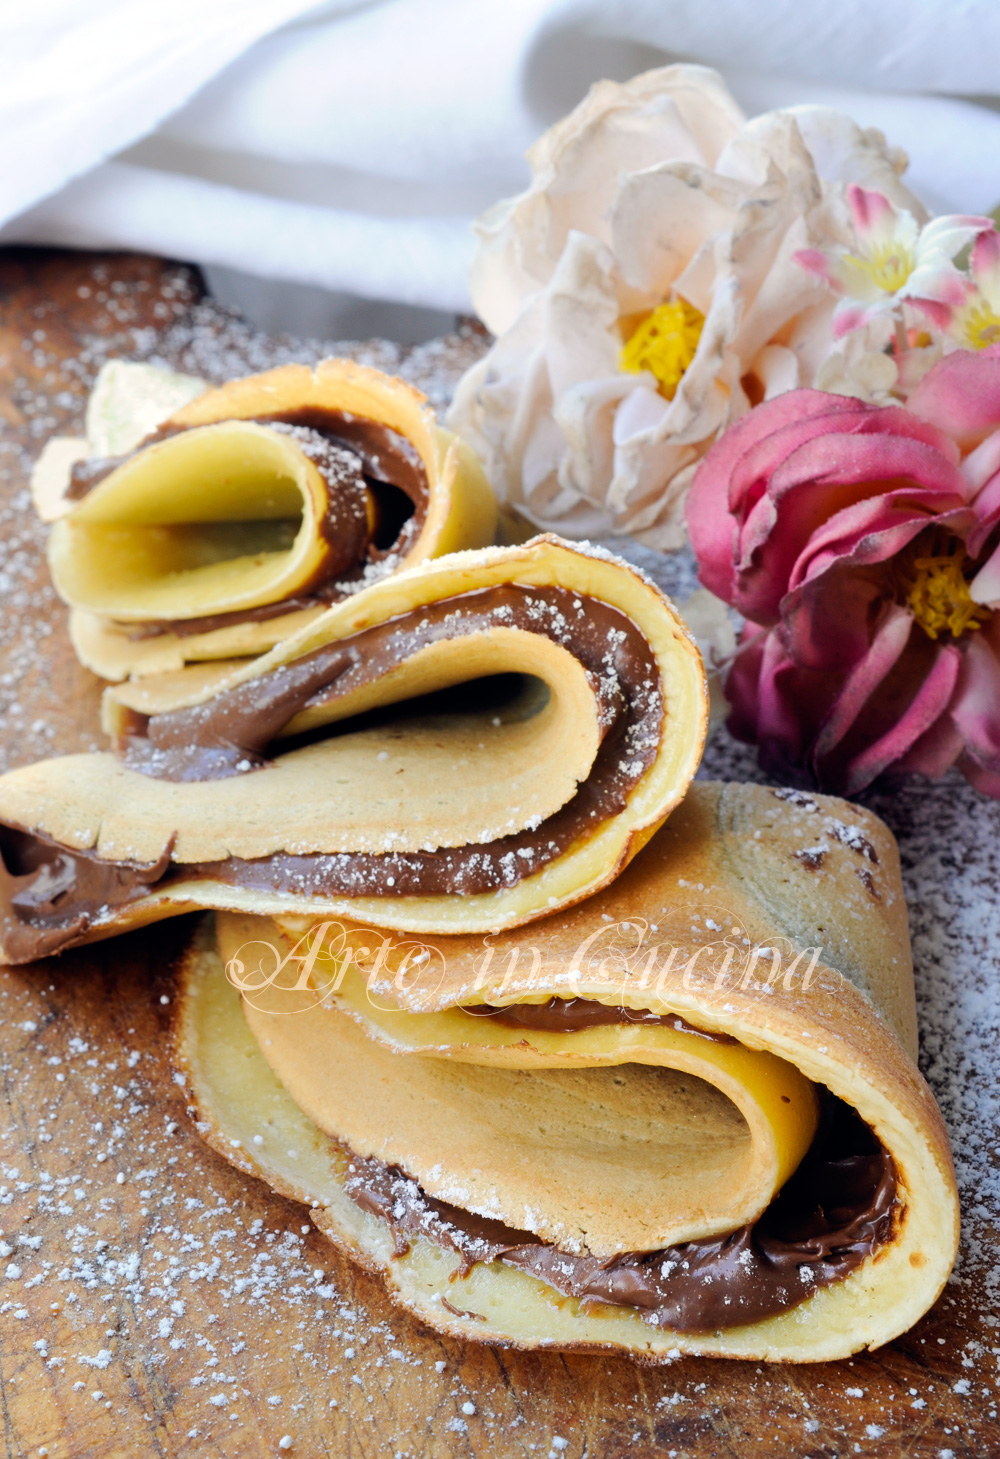 Ricette crepes dolci nutella